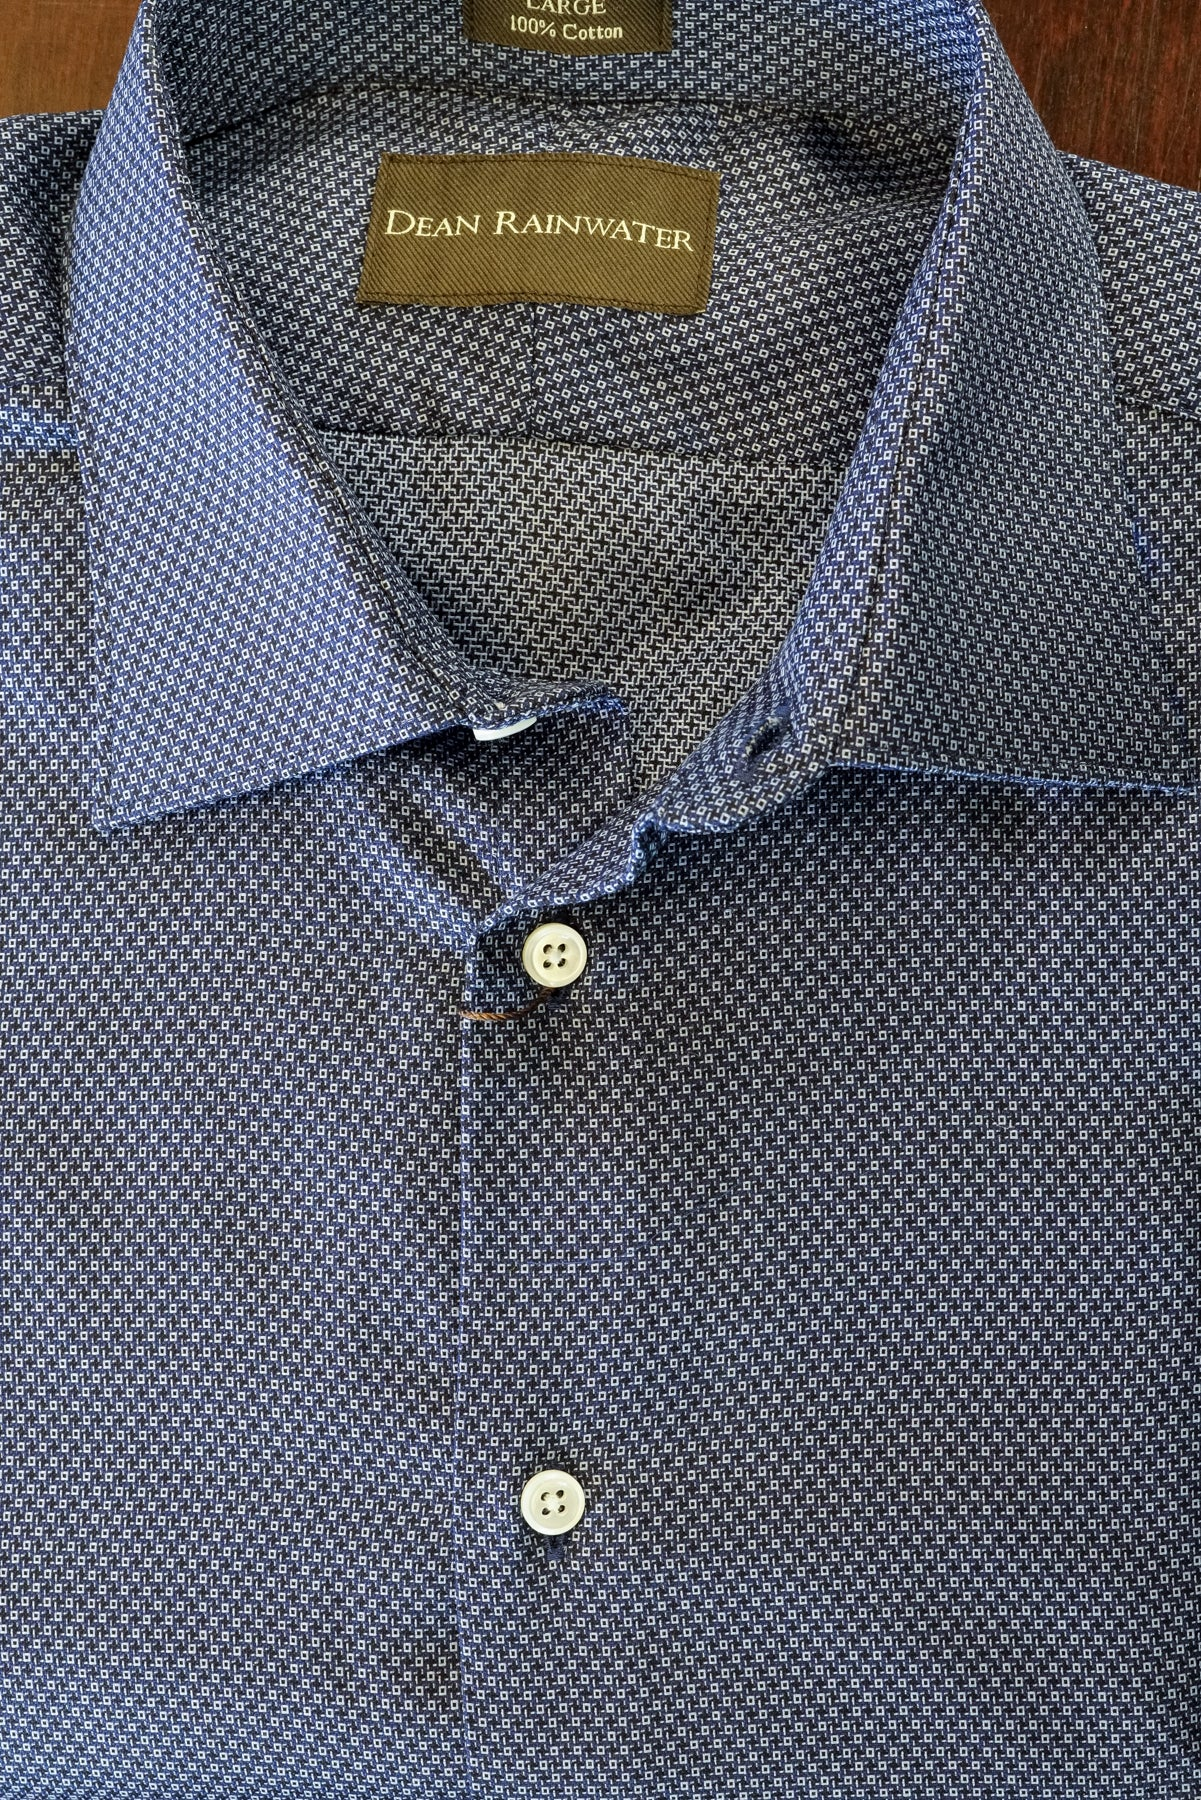 Navy Small Neat Print Cotton Spread Collar by Dean Rainwater - Rainwater's Men's Clothing and Tuxedo Rental